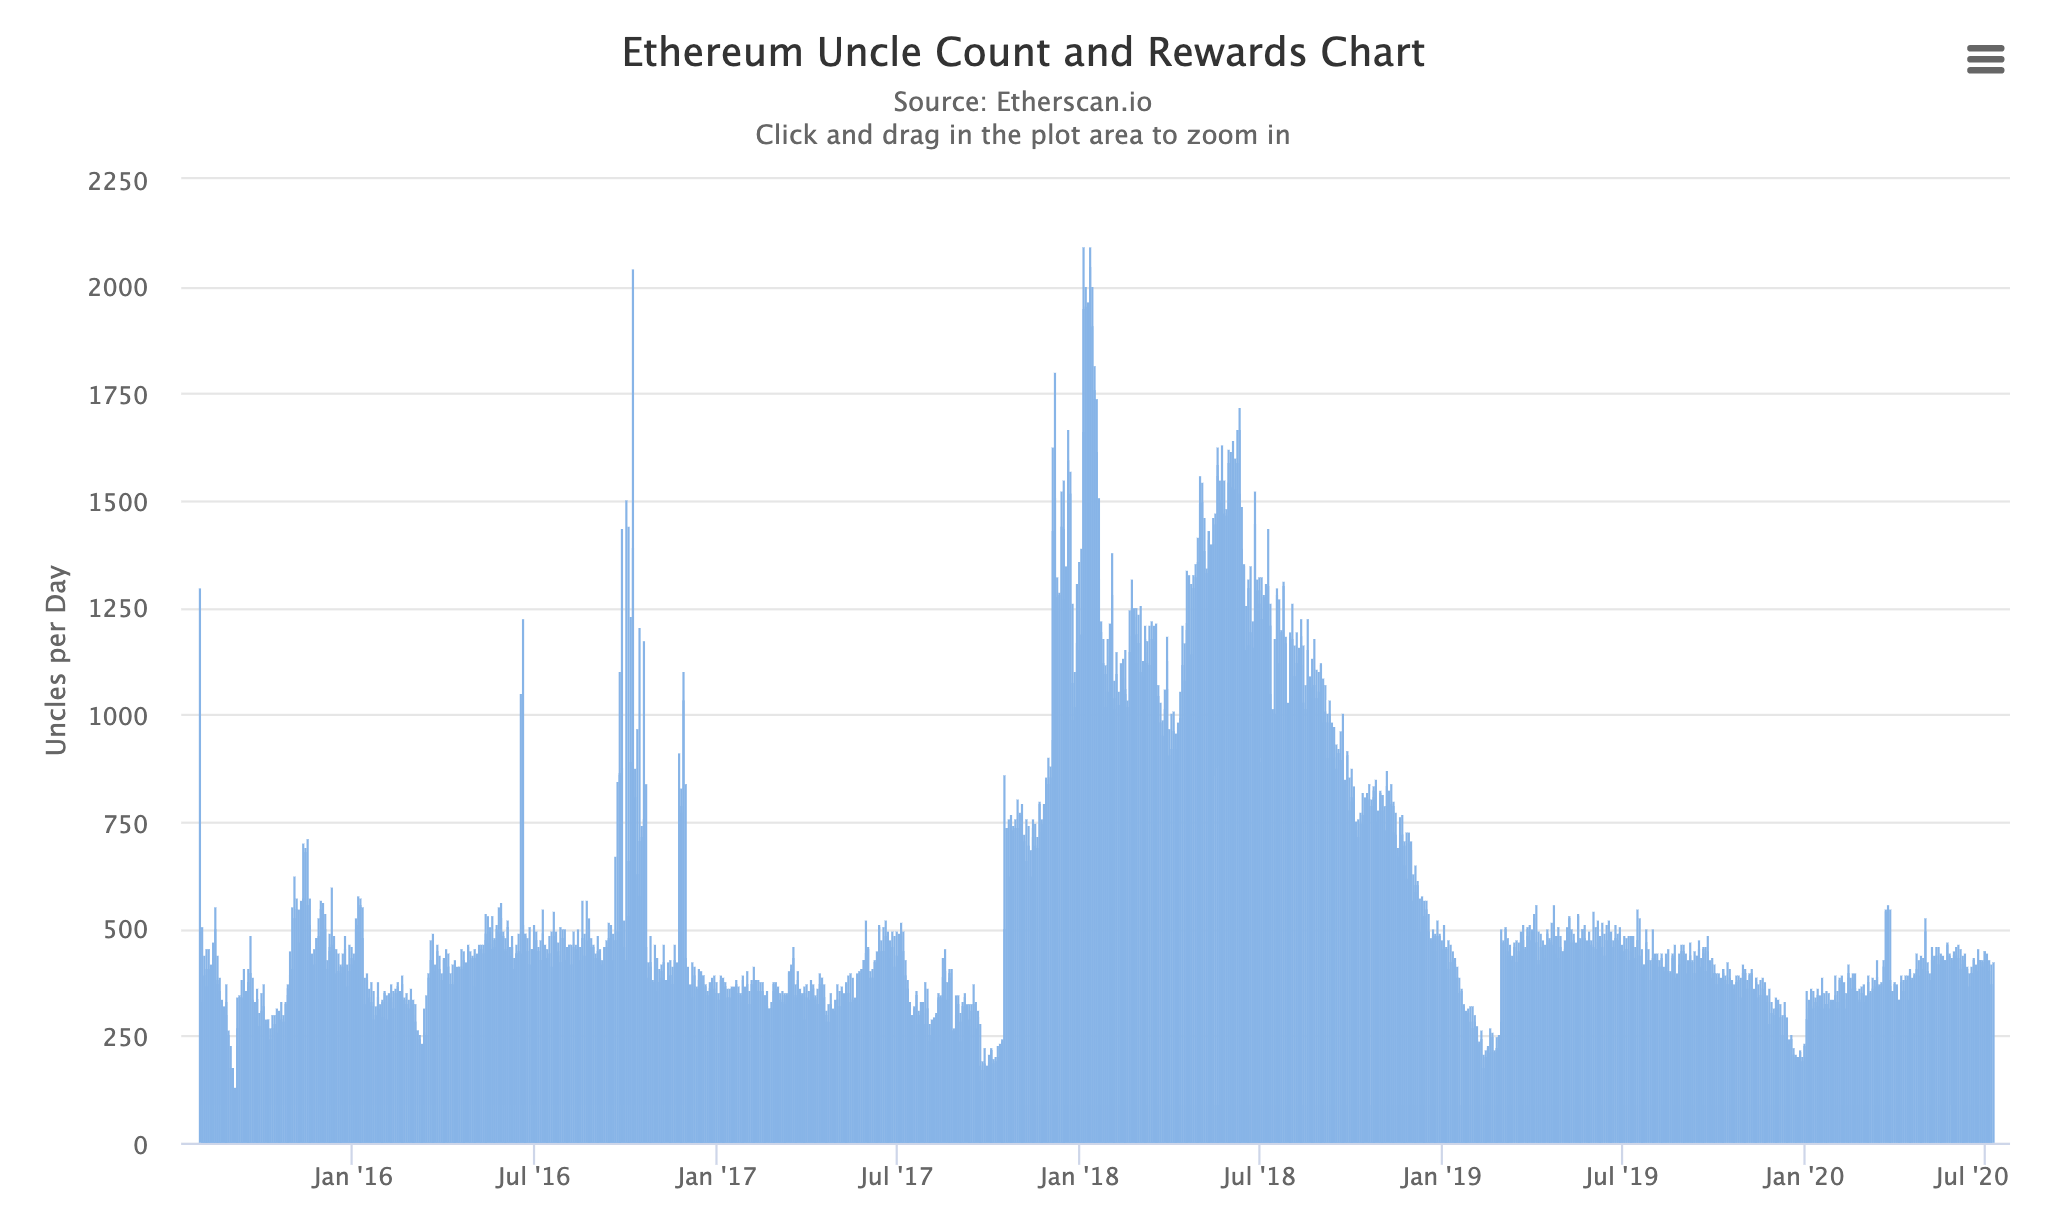 Ethereum uncle rates, July 2020